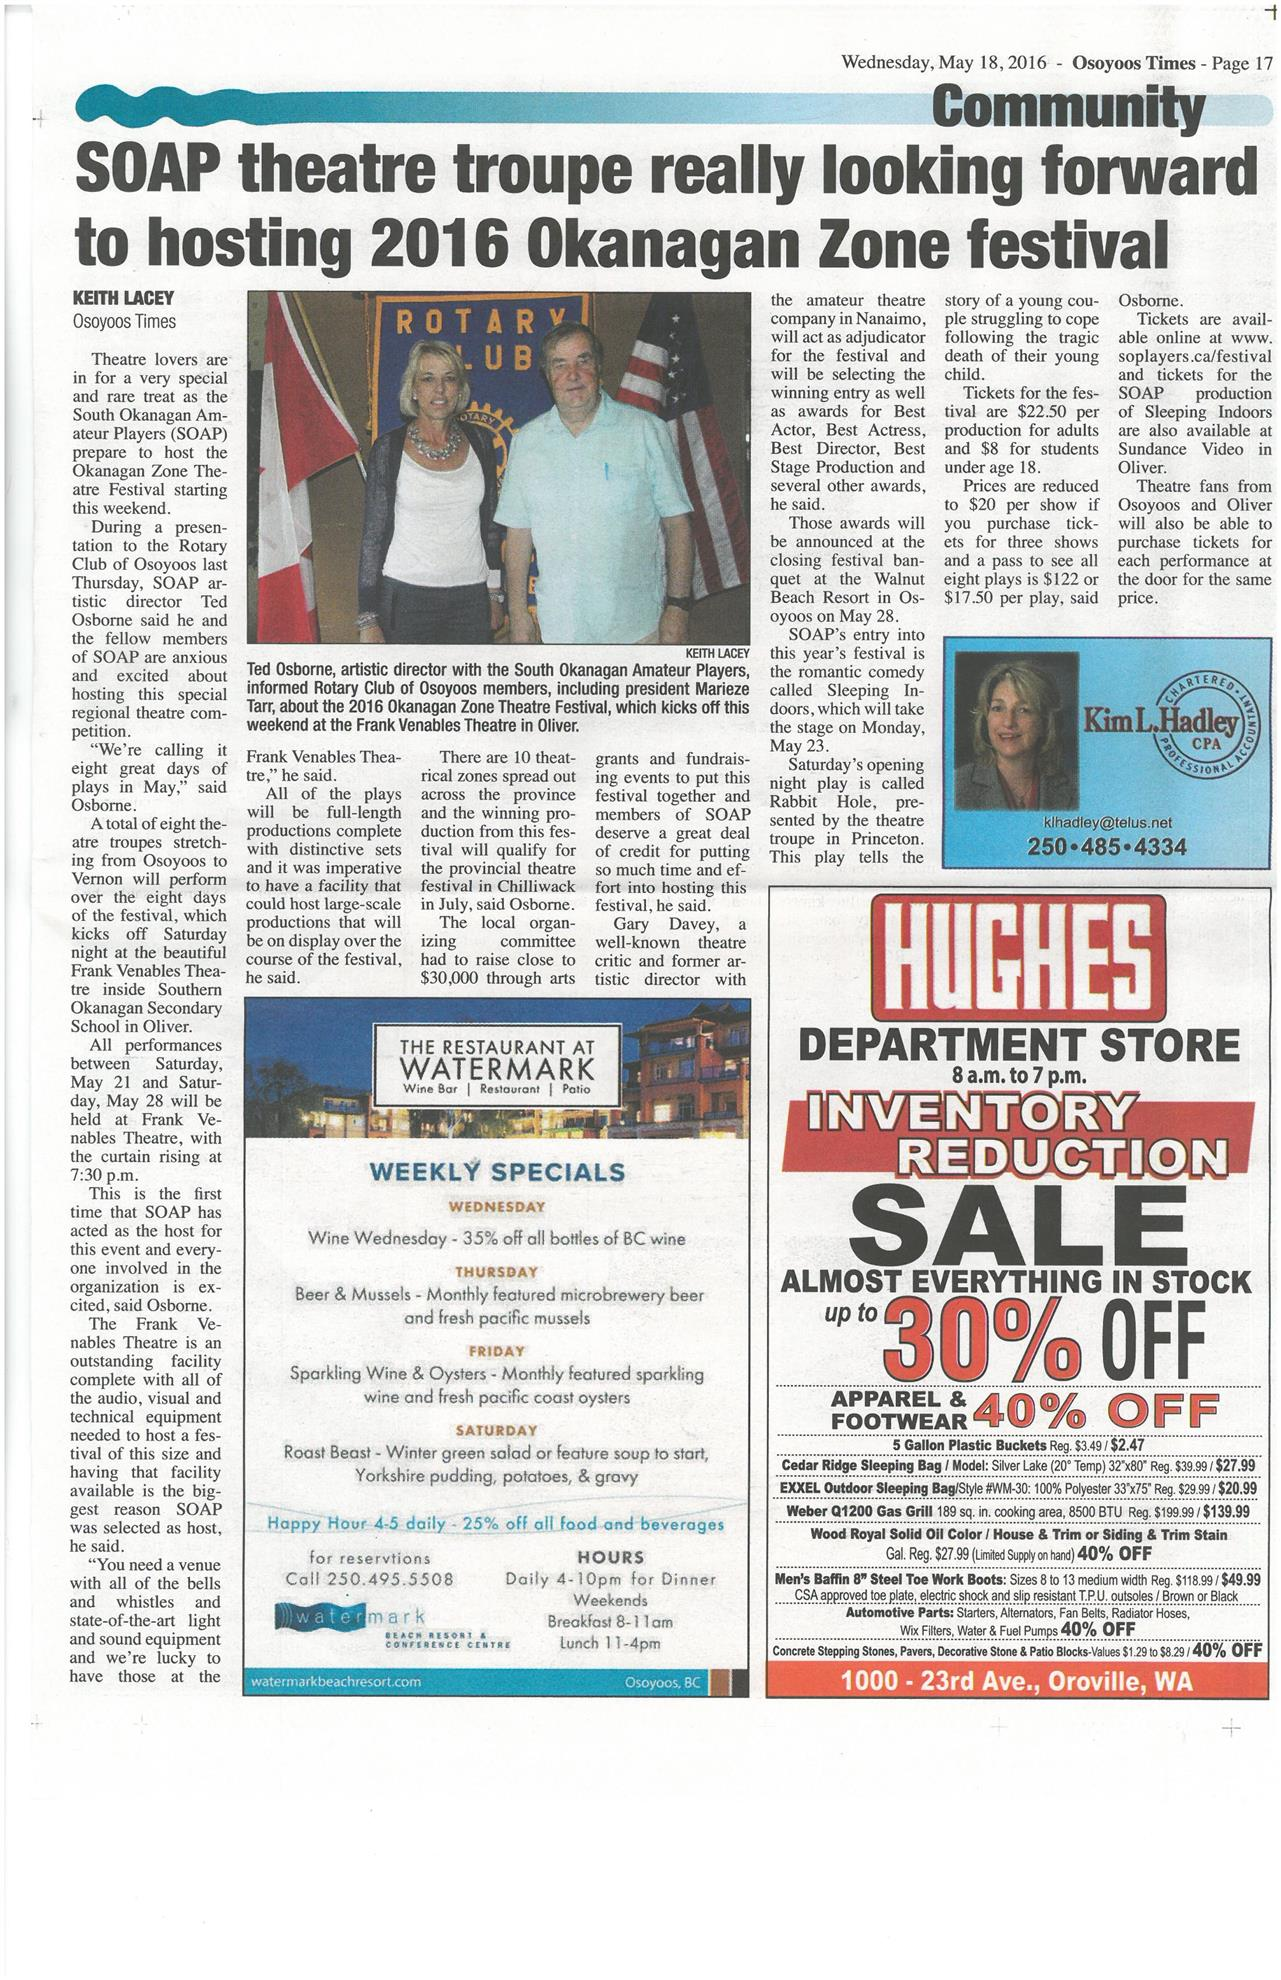 Newspaper Articles | Rotary Club of Osoyoos